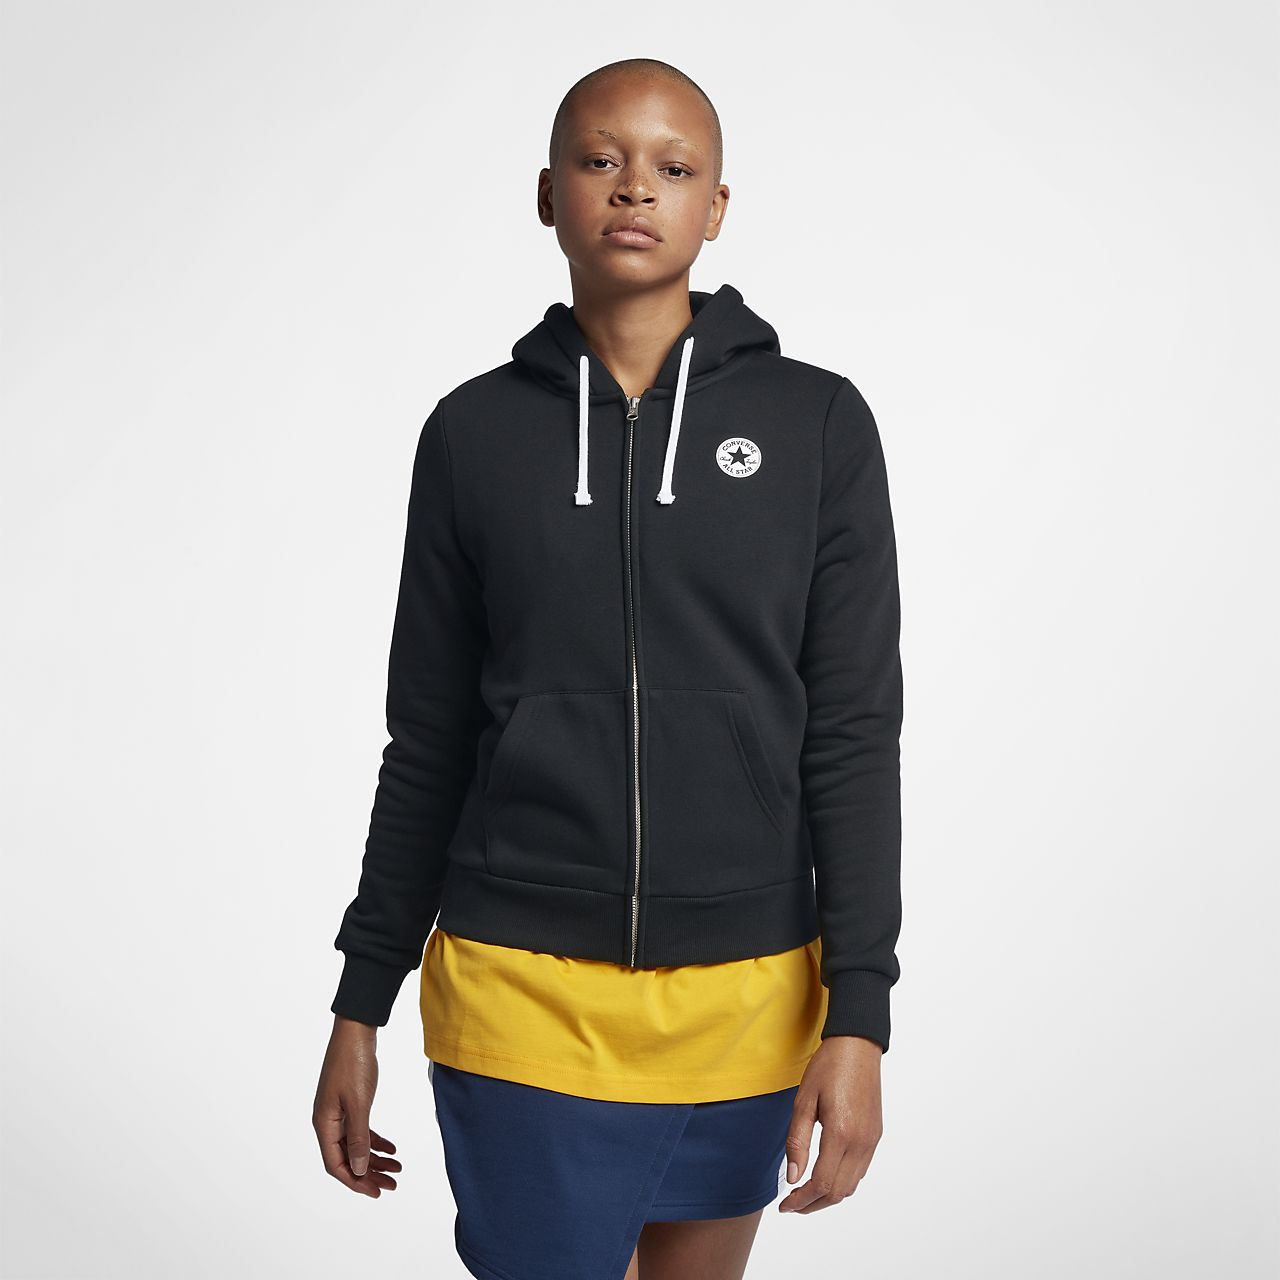 Converse Chuck Taylor Women's Full-Zip Graphic Hoodie